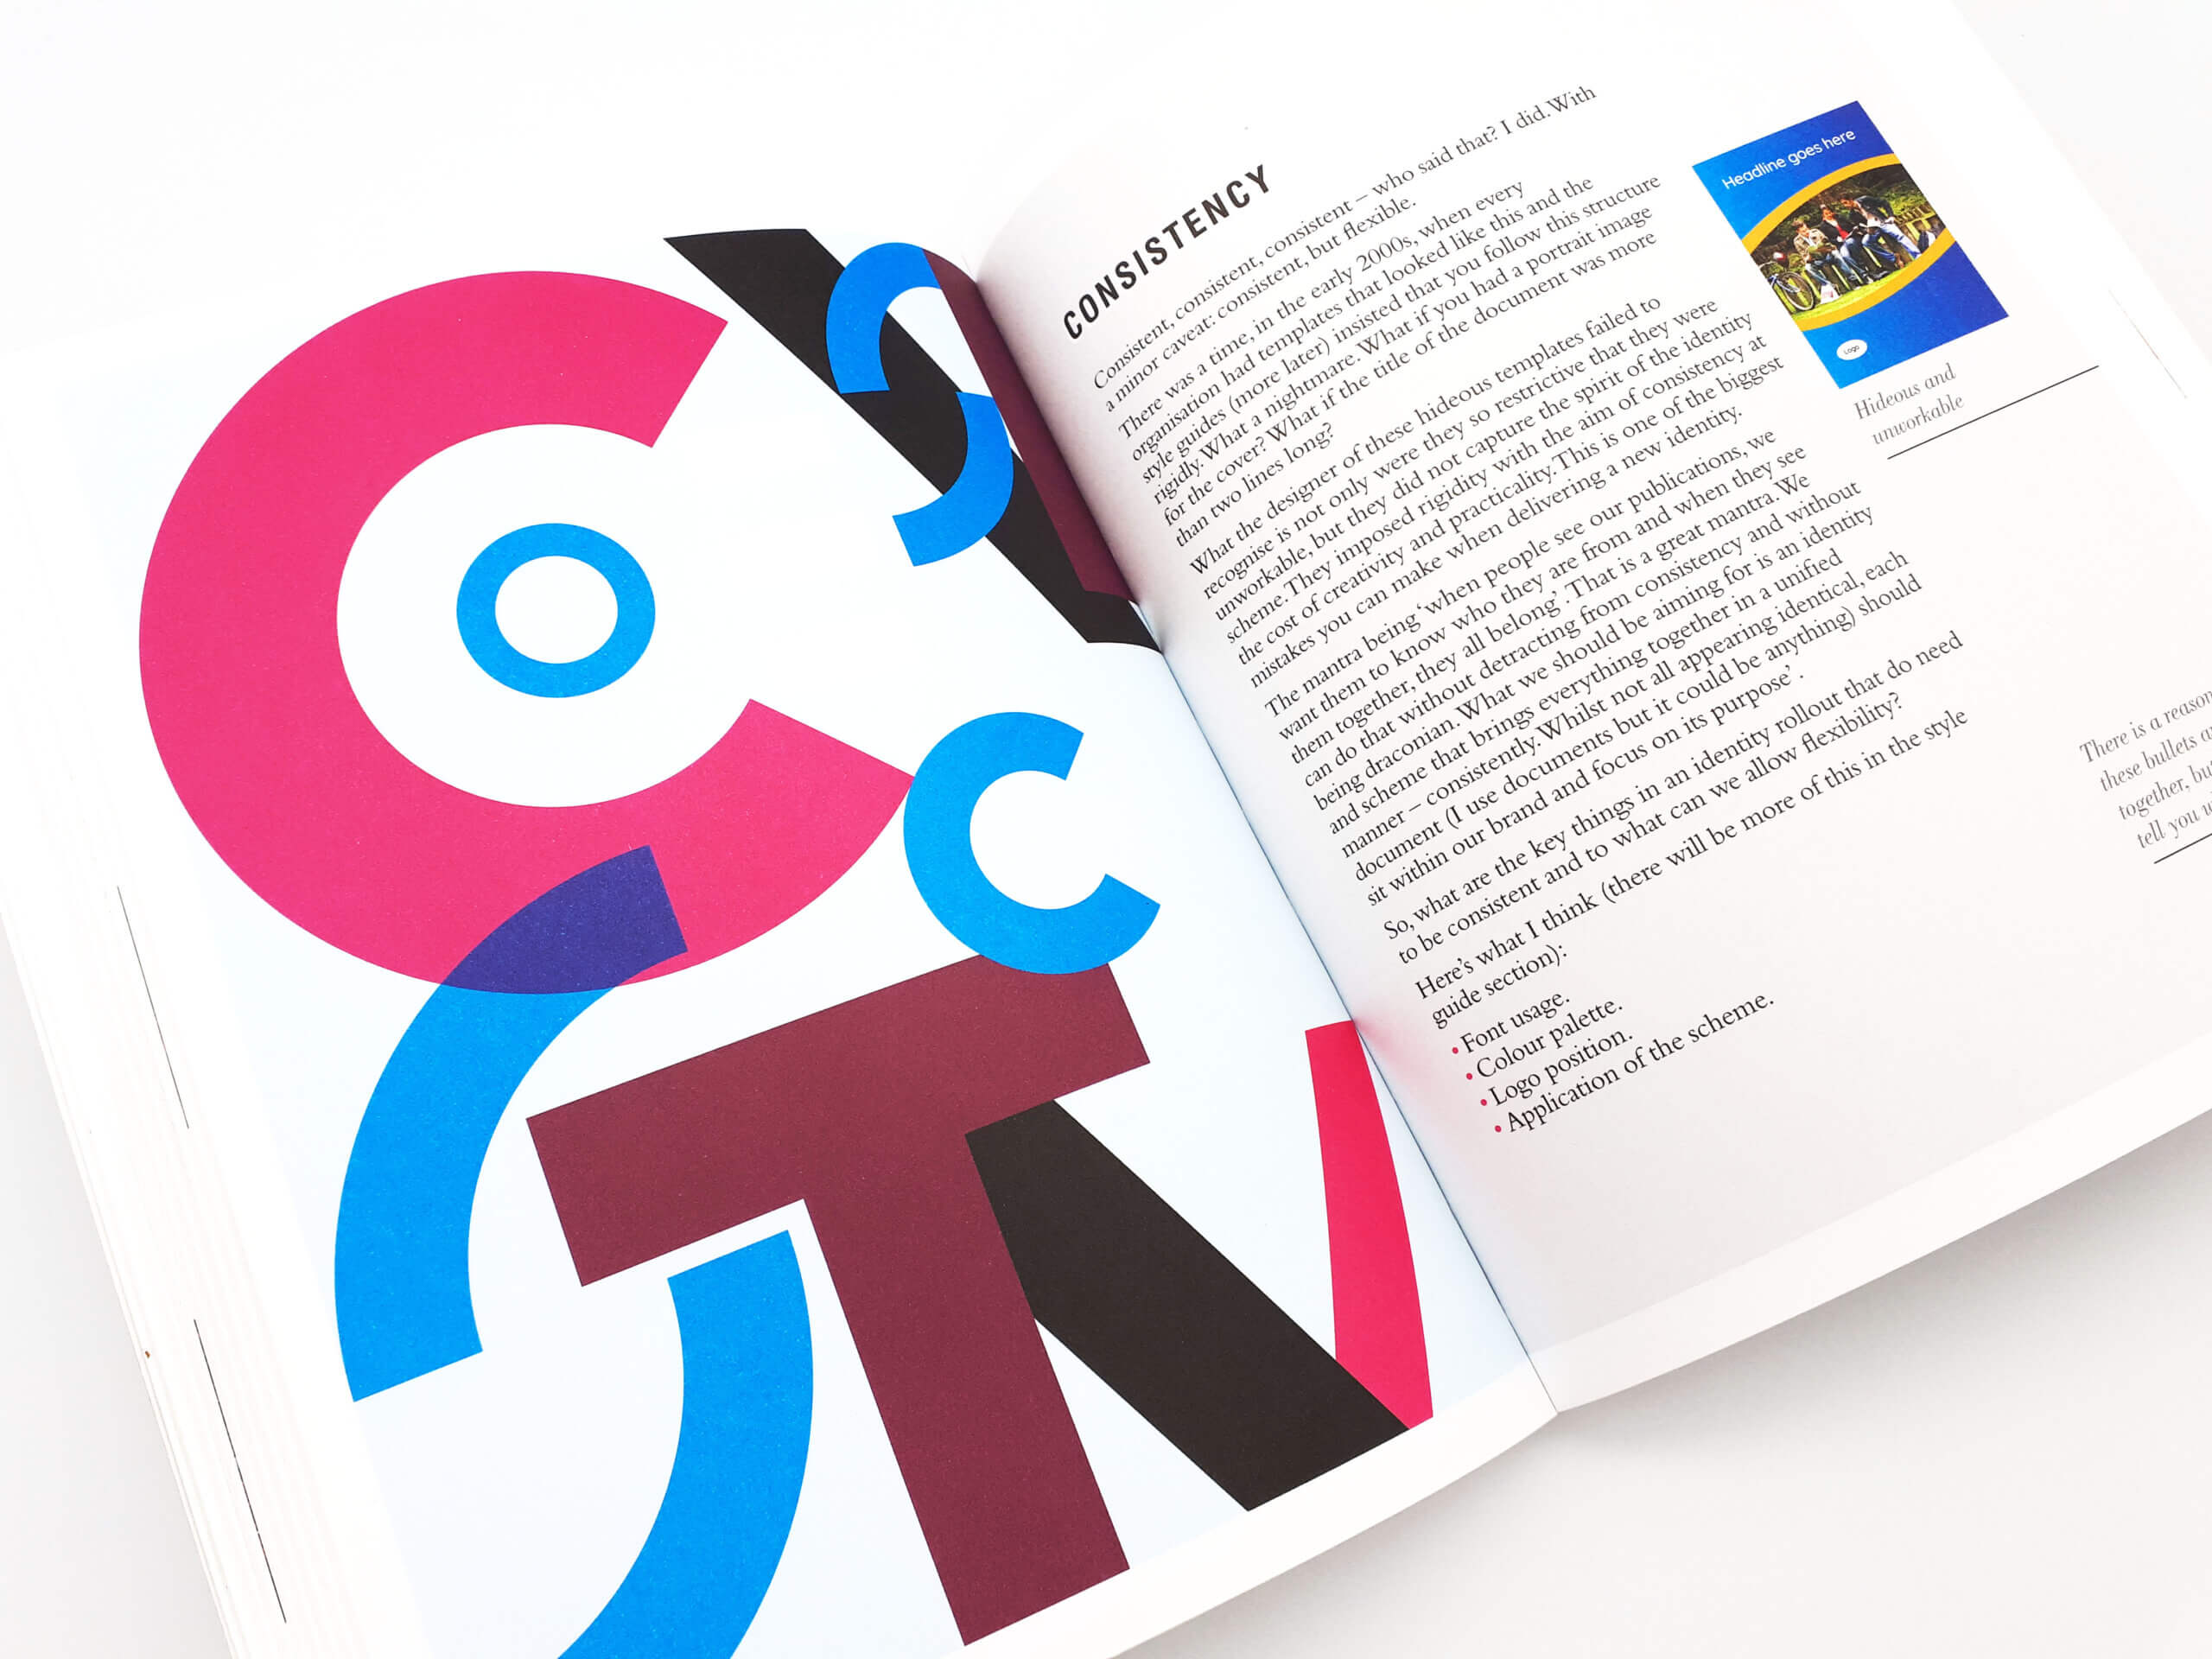 Know Your Onions - Corporate Identity By Drew de Soto - Book Review - Consistency